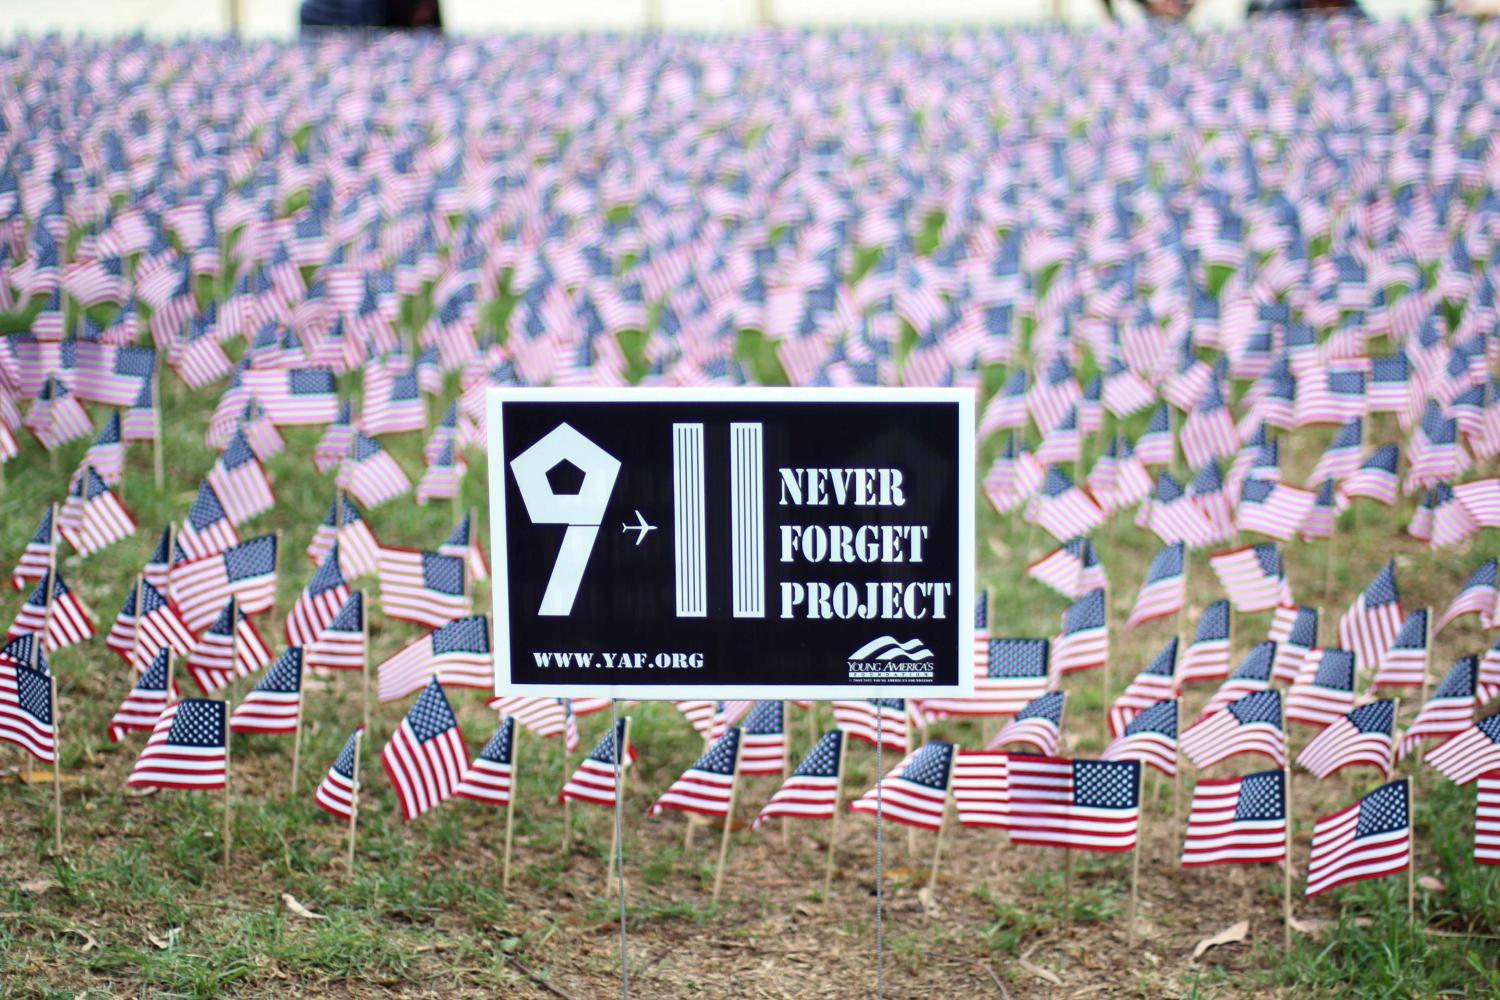 Seniors William Liang, Rhiston Yu, Jonathan Lewin and Hedric Pisigan displayed 2,997 flags (number of lives lost on 9/11) in the front of the school.